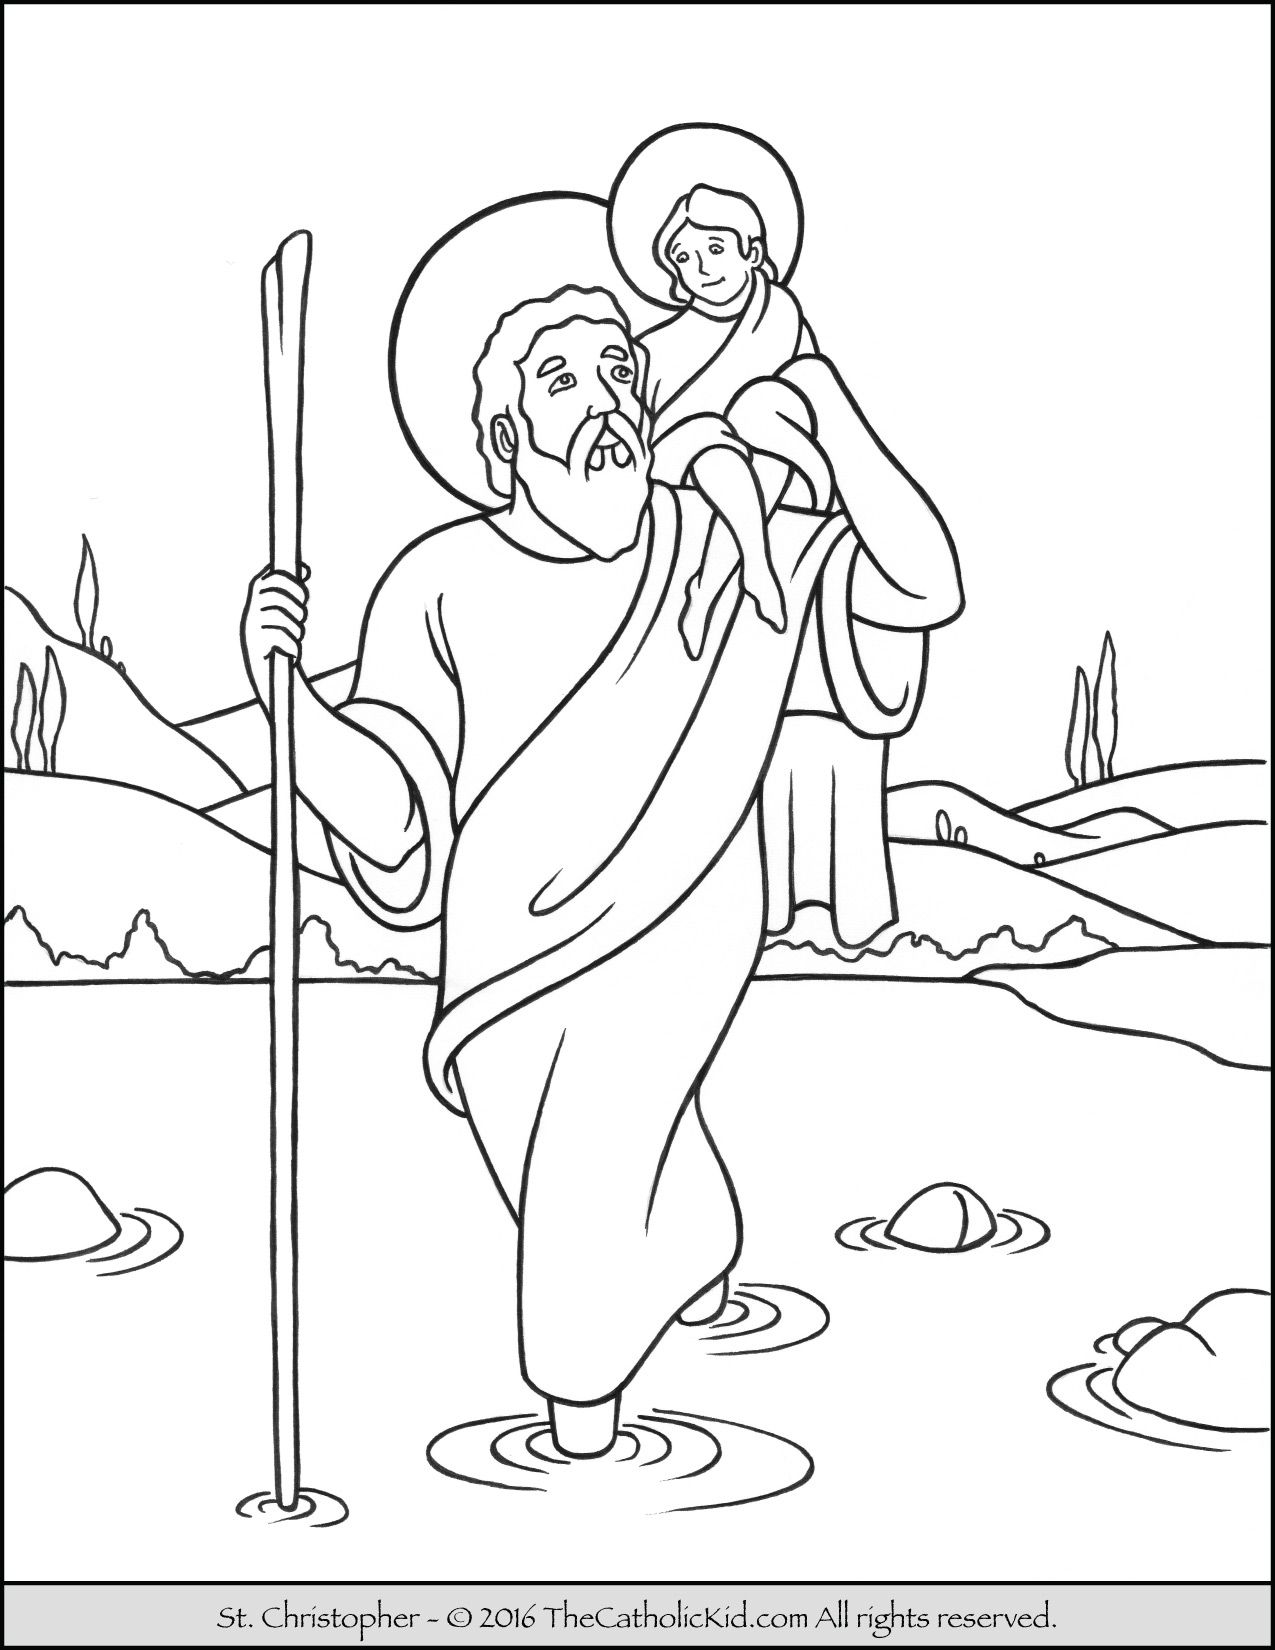 Saint Christopher Coloring Page - The Catholic Kid | Catholic Saints ...